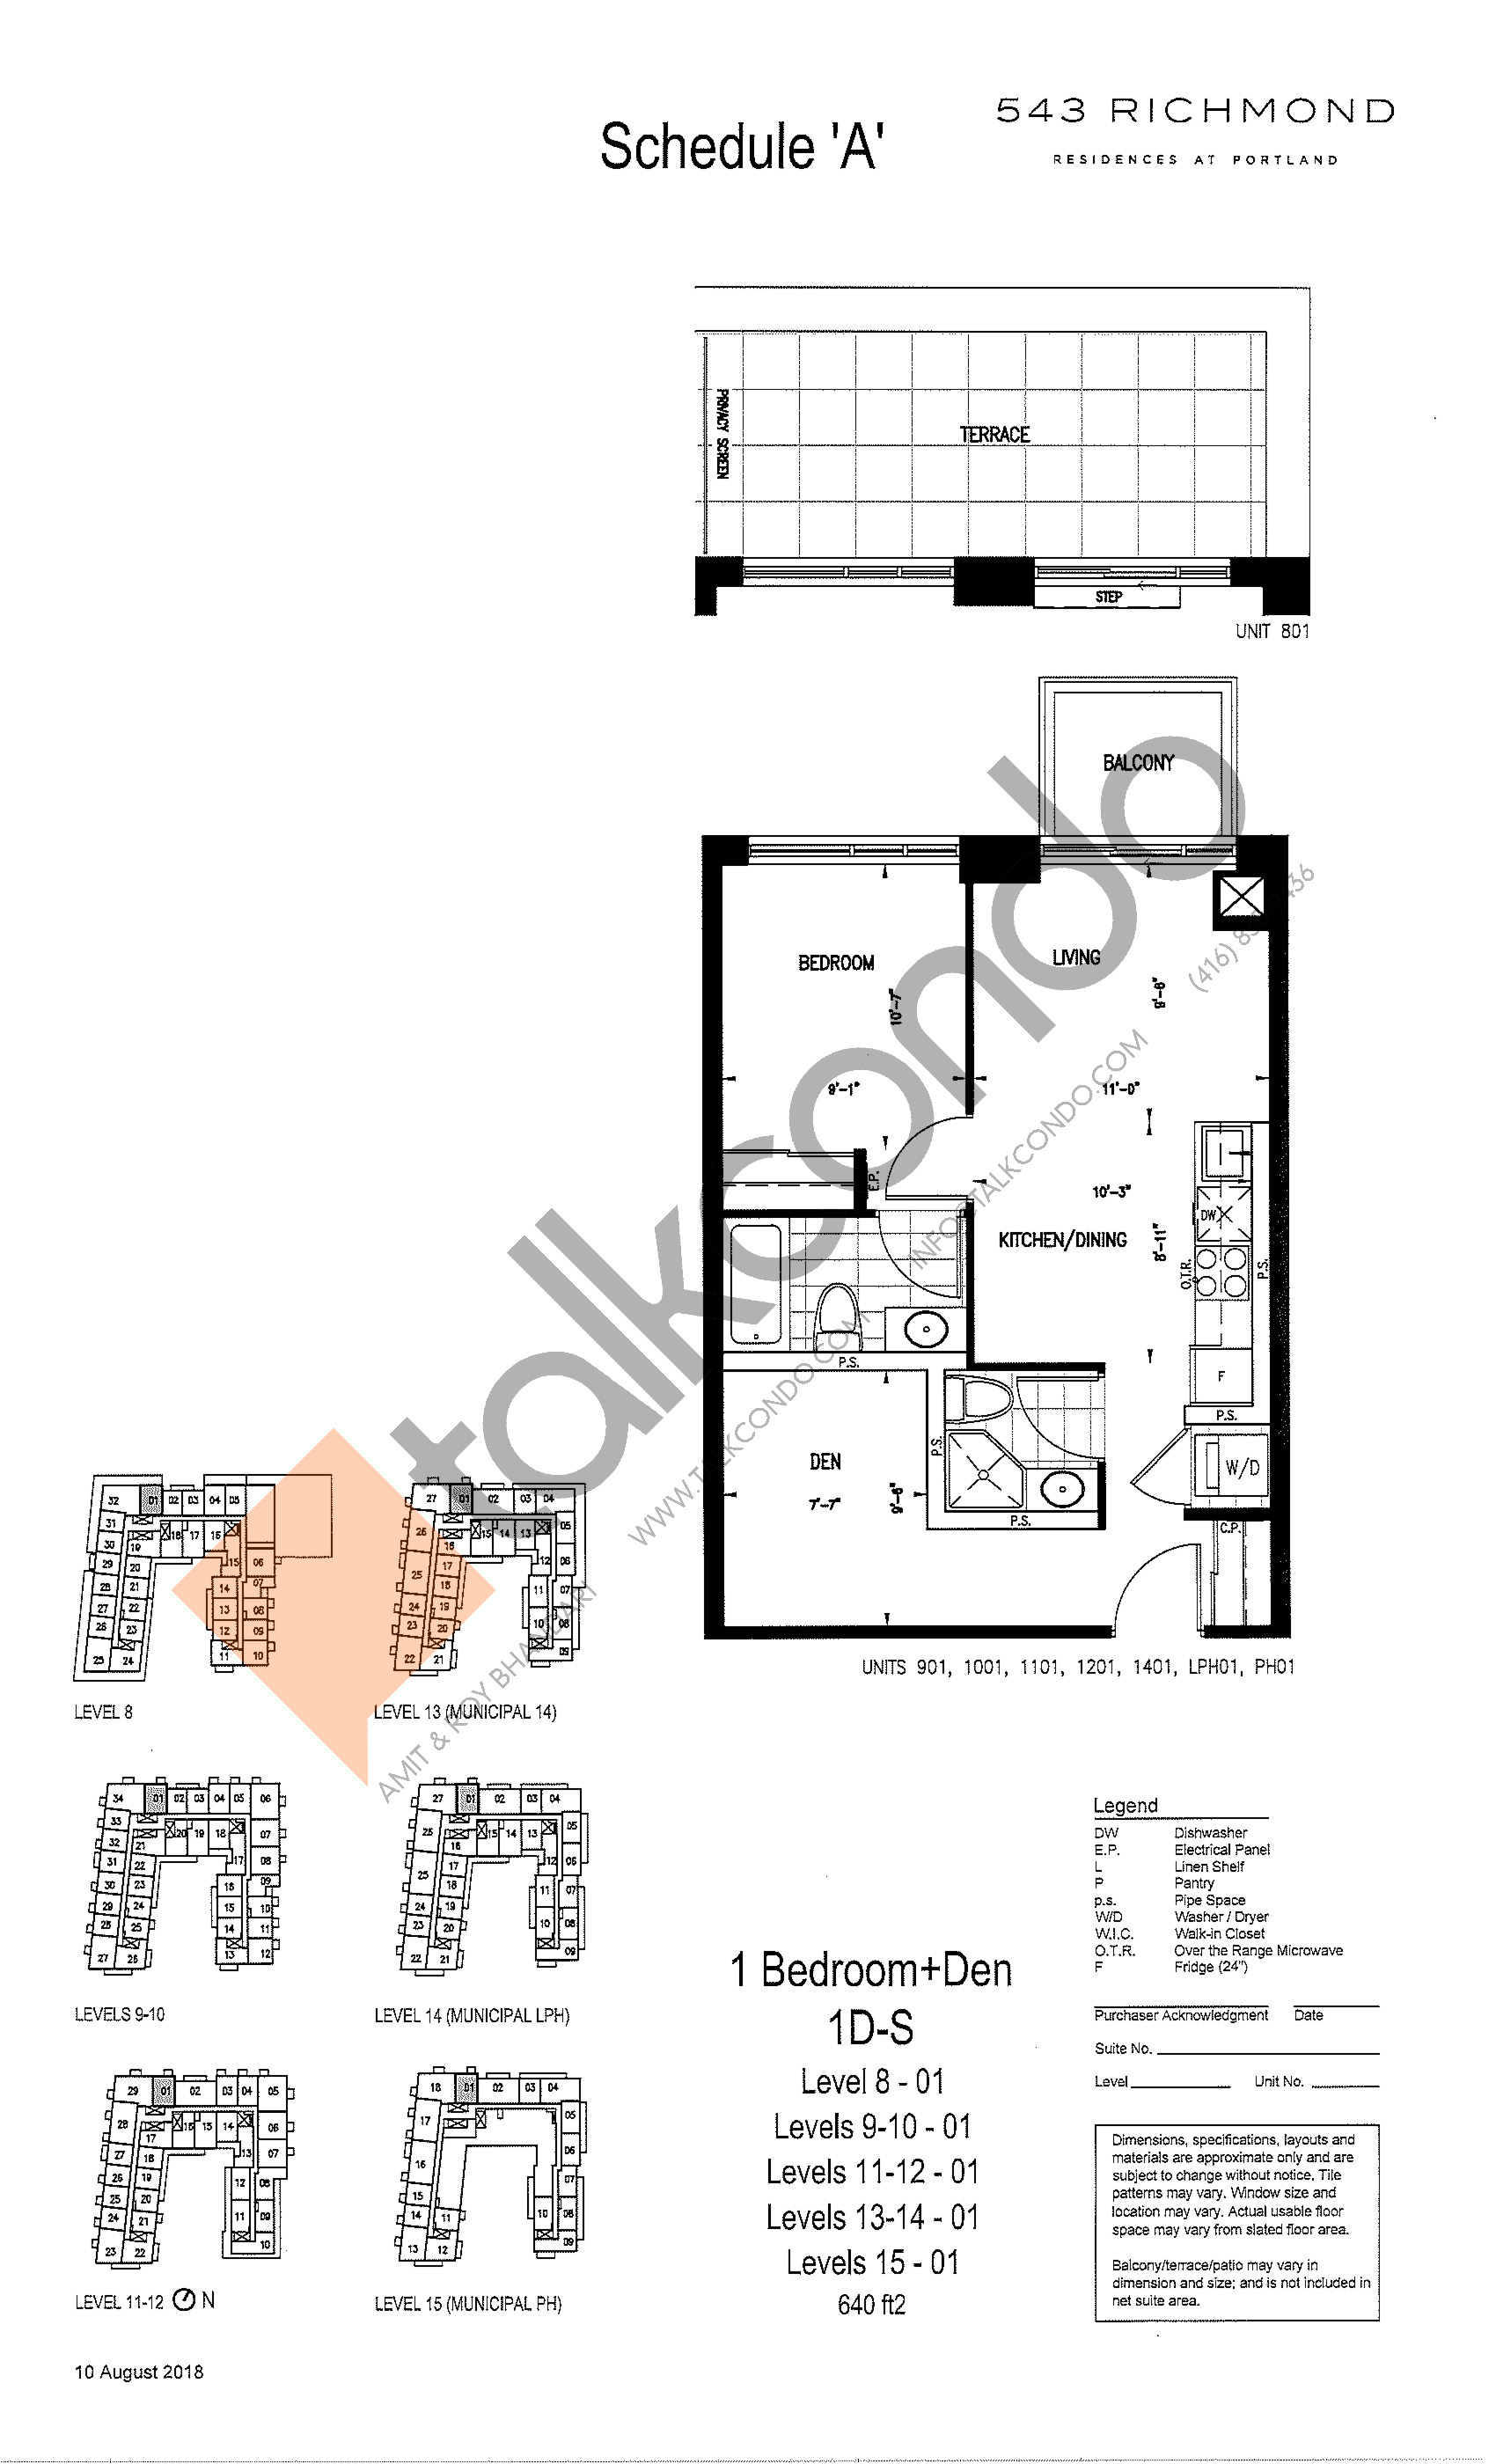 1D-S Floor Plan at 543 Richmond St Condos - 640 sq.ft